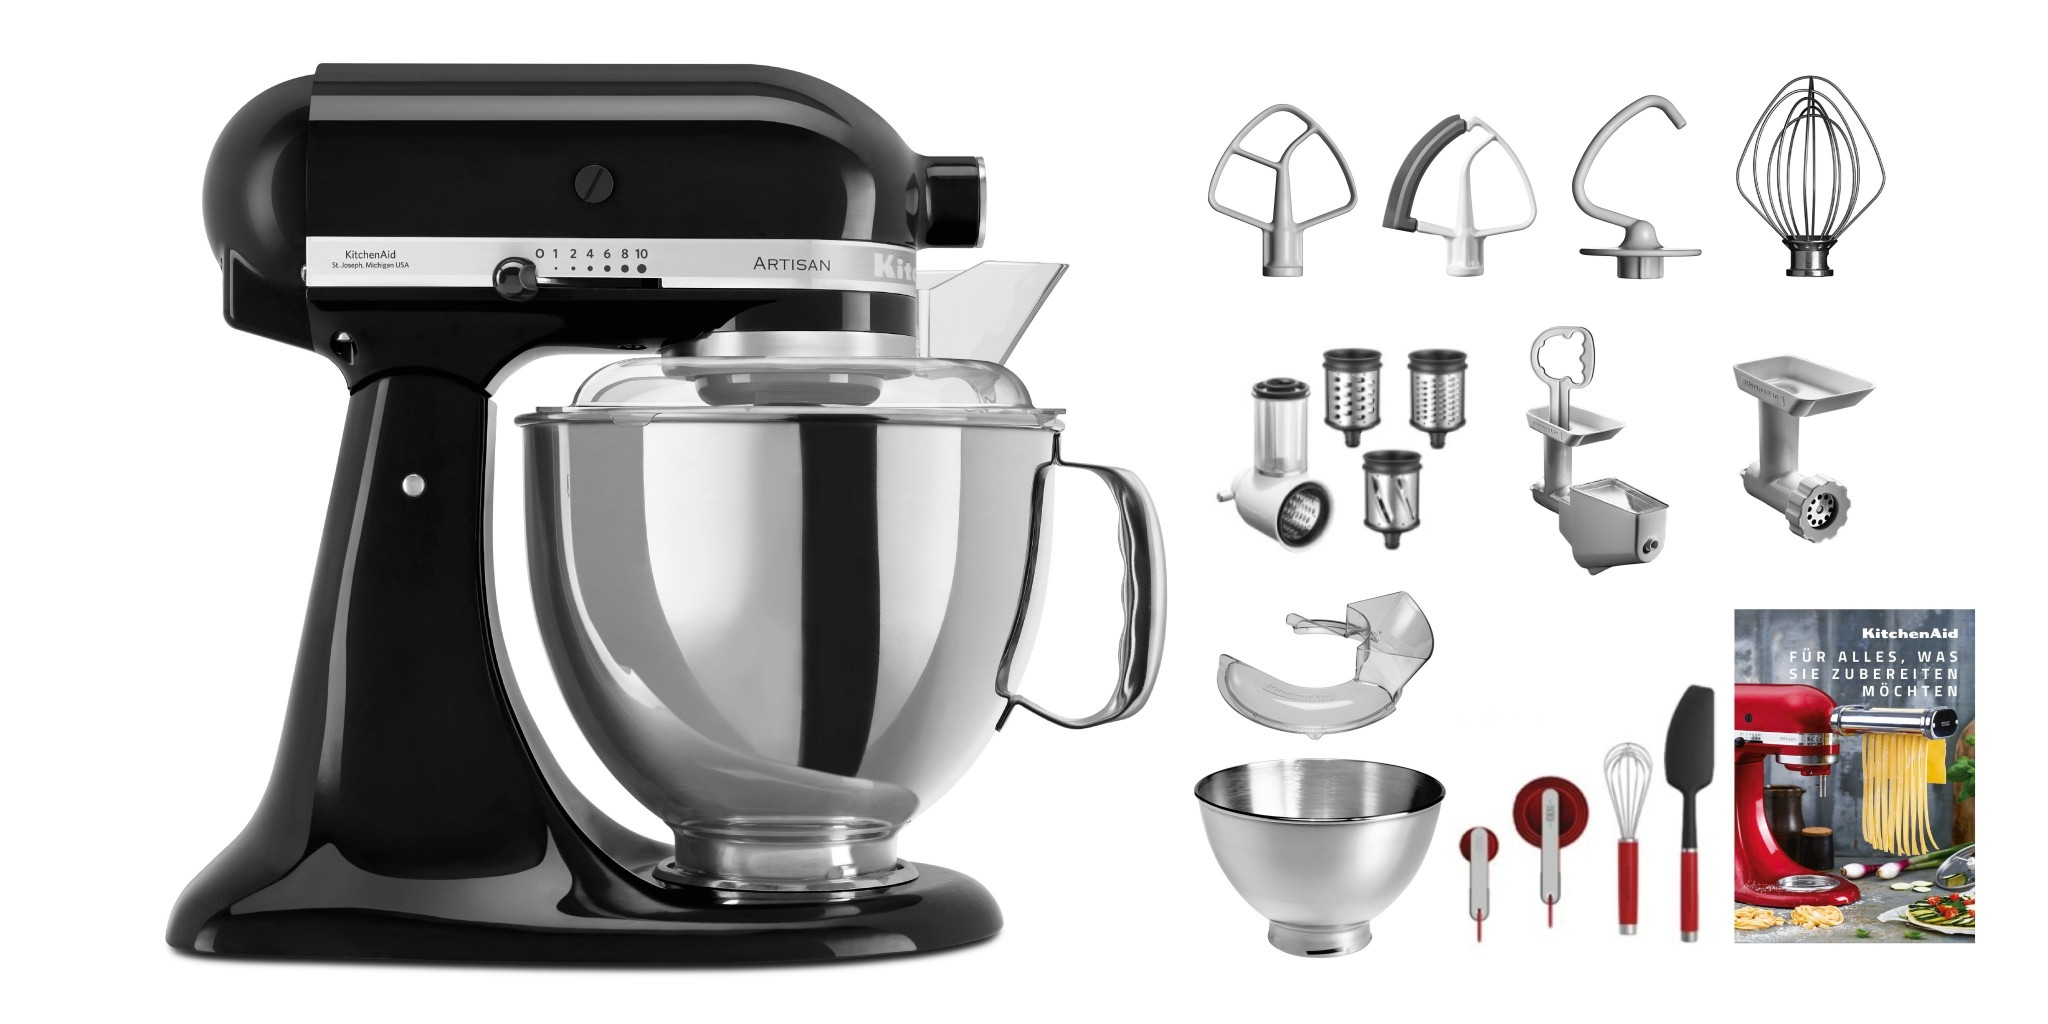 KitchenAid Jubi-Set KSM200 Swiss Edition